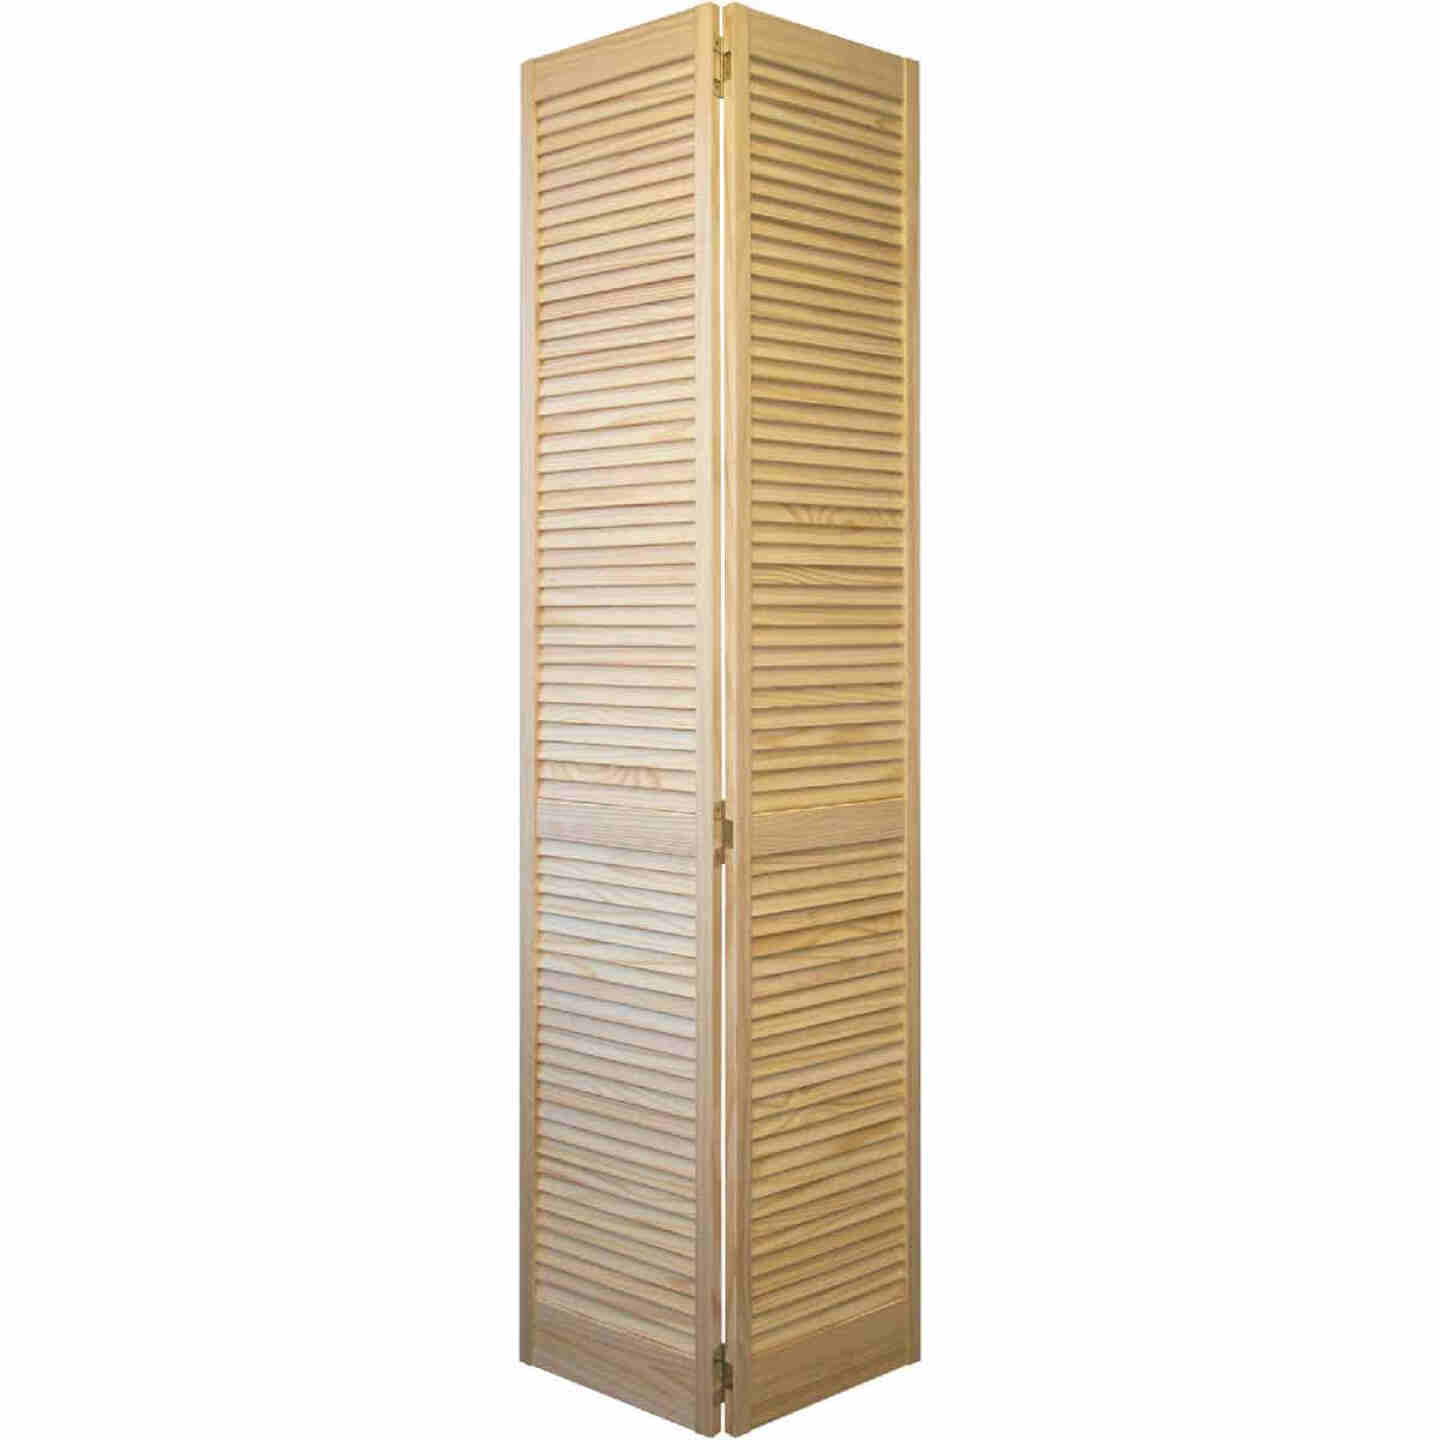 Jeld Wen 24 In. W. x 80 In. H. Pine Louver/Louver Natural Color Bifold Door Image 1